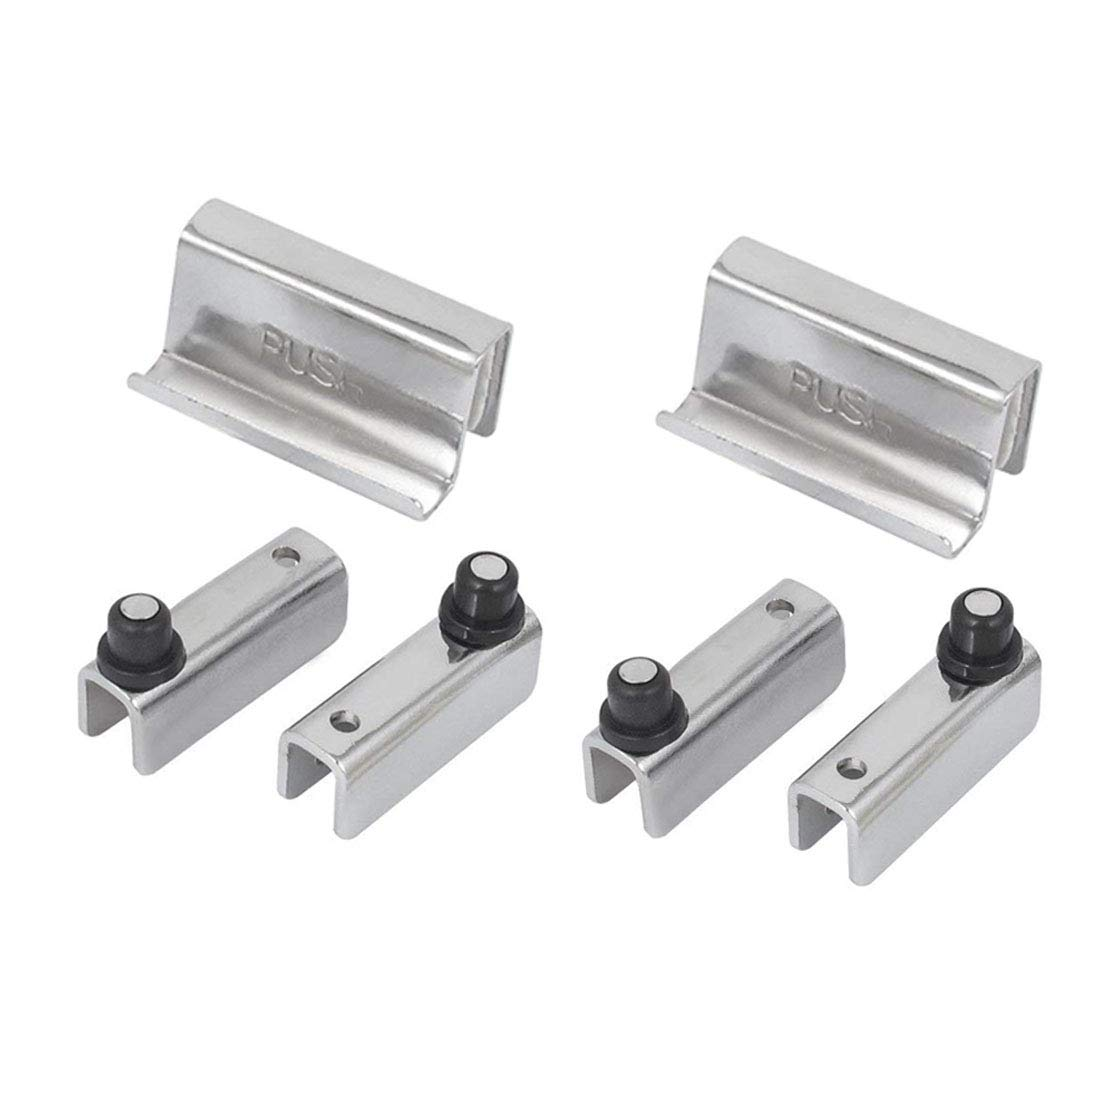 Sipery Glass Door Double Magnetic Touch Catch Latch with Clamp Compatible Glass Door Cabinet